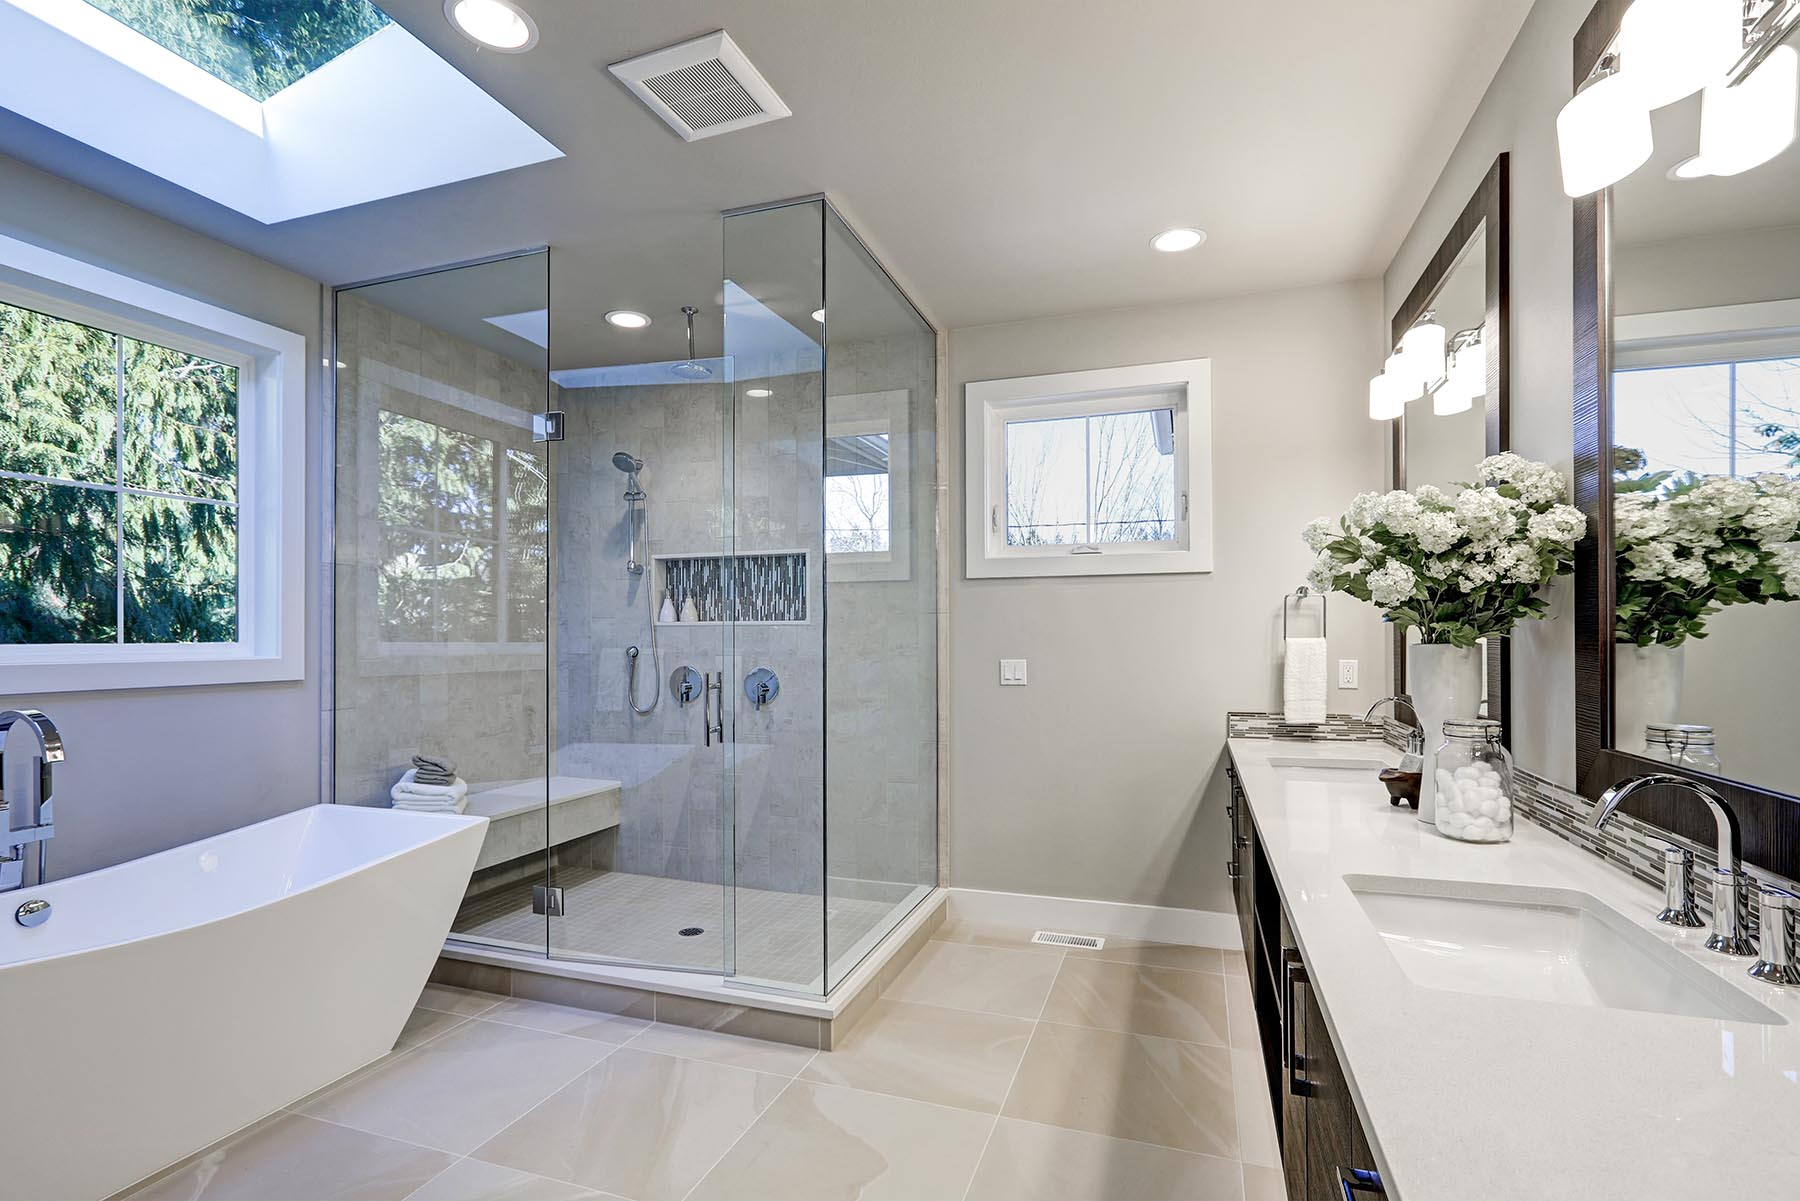 Repair shower valves with the top plumbing contractors in st. Charles, IL